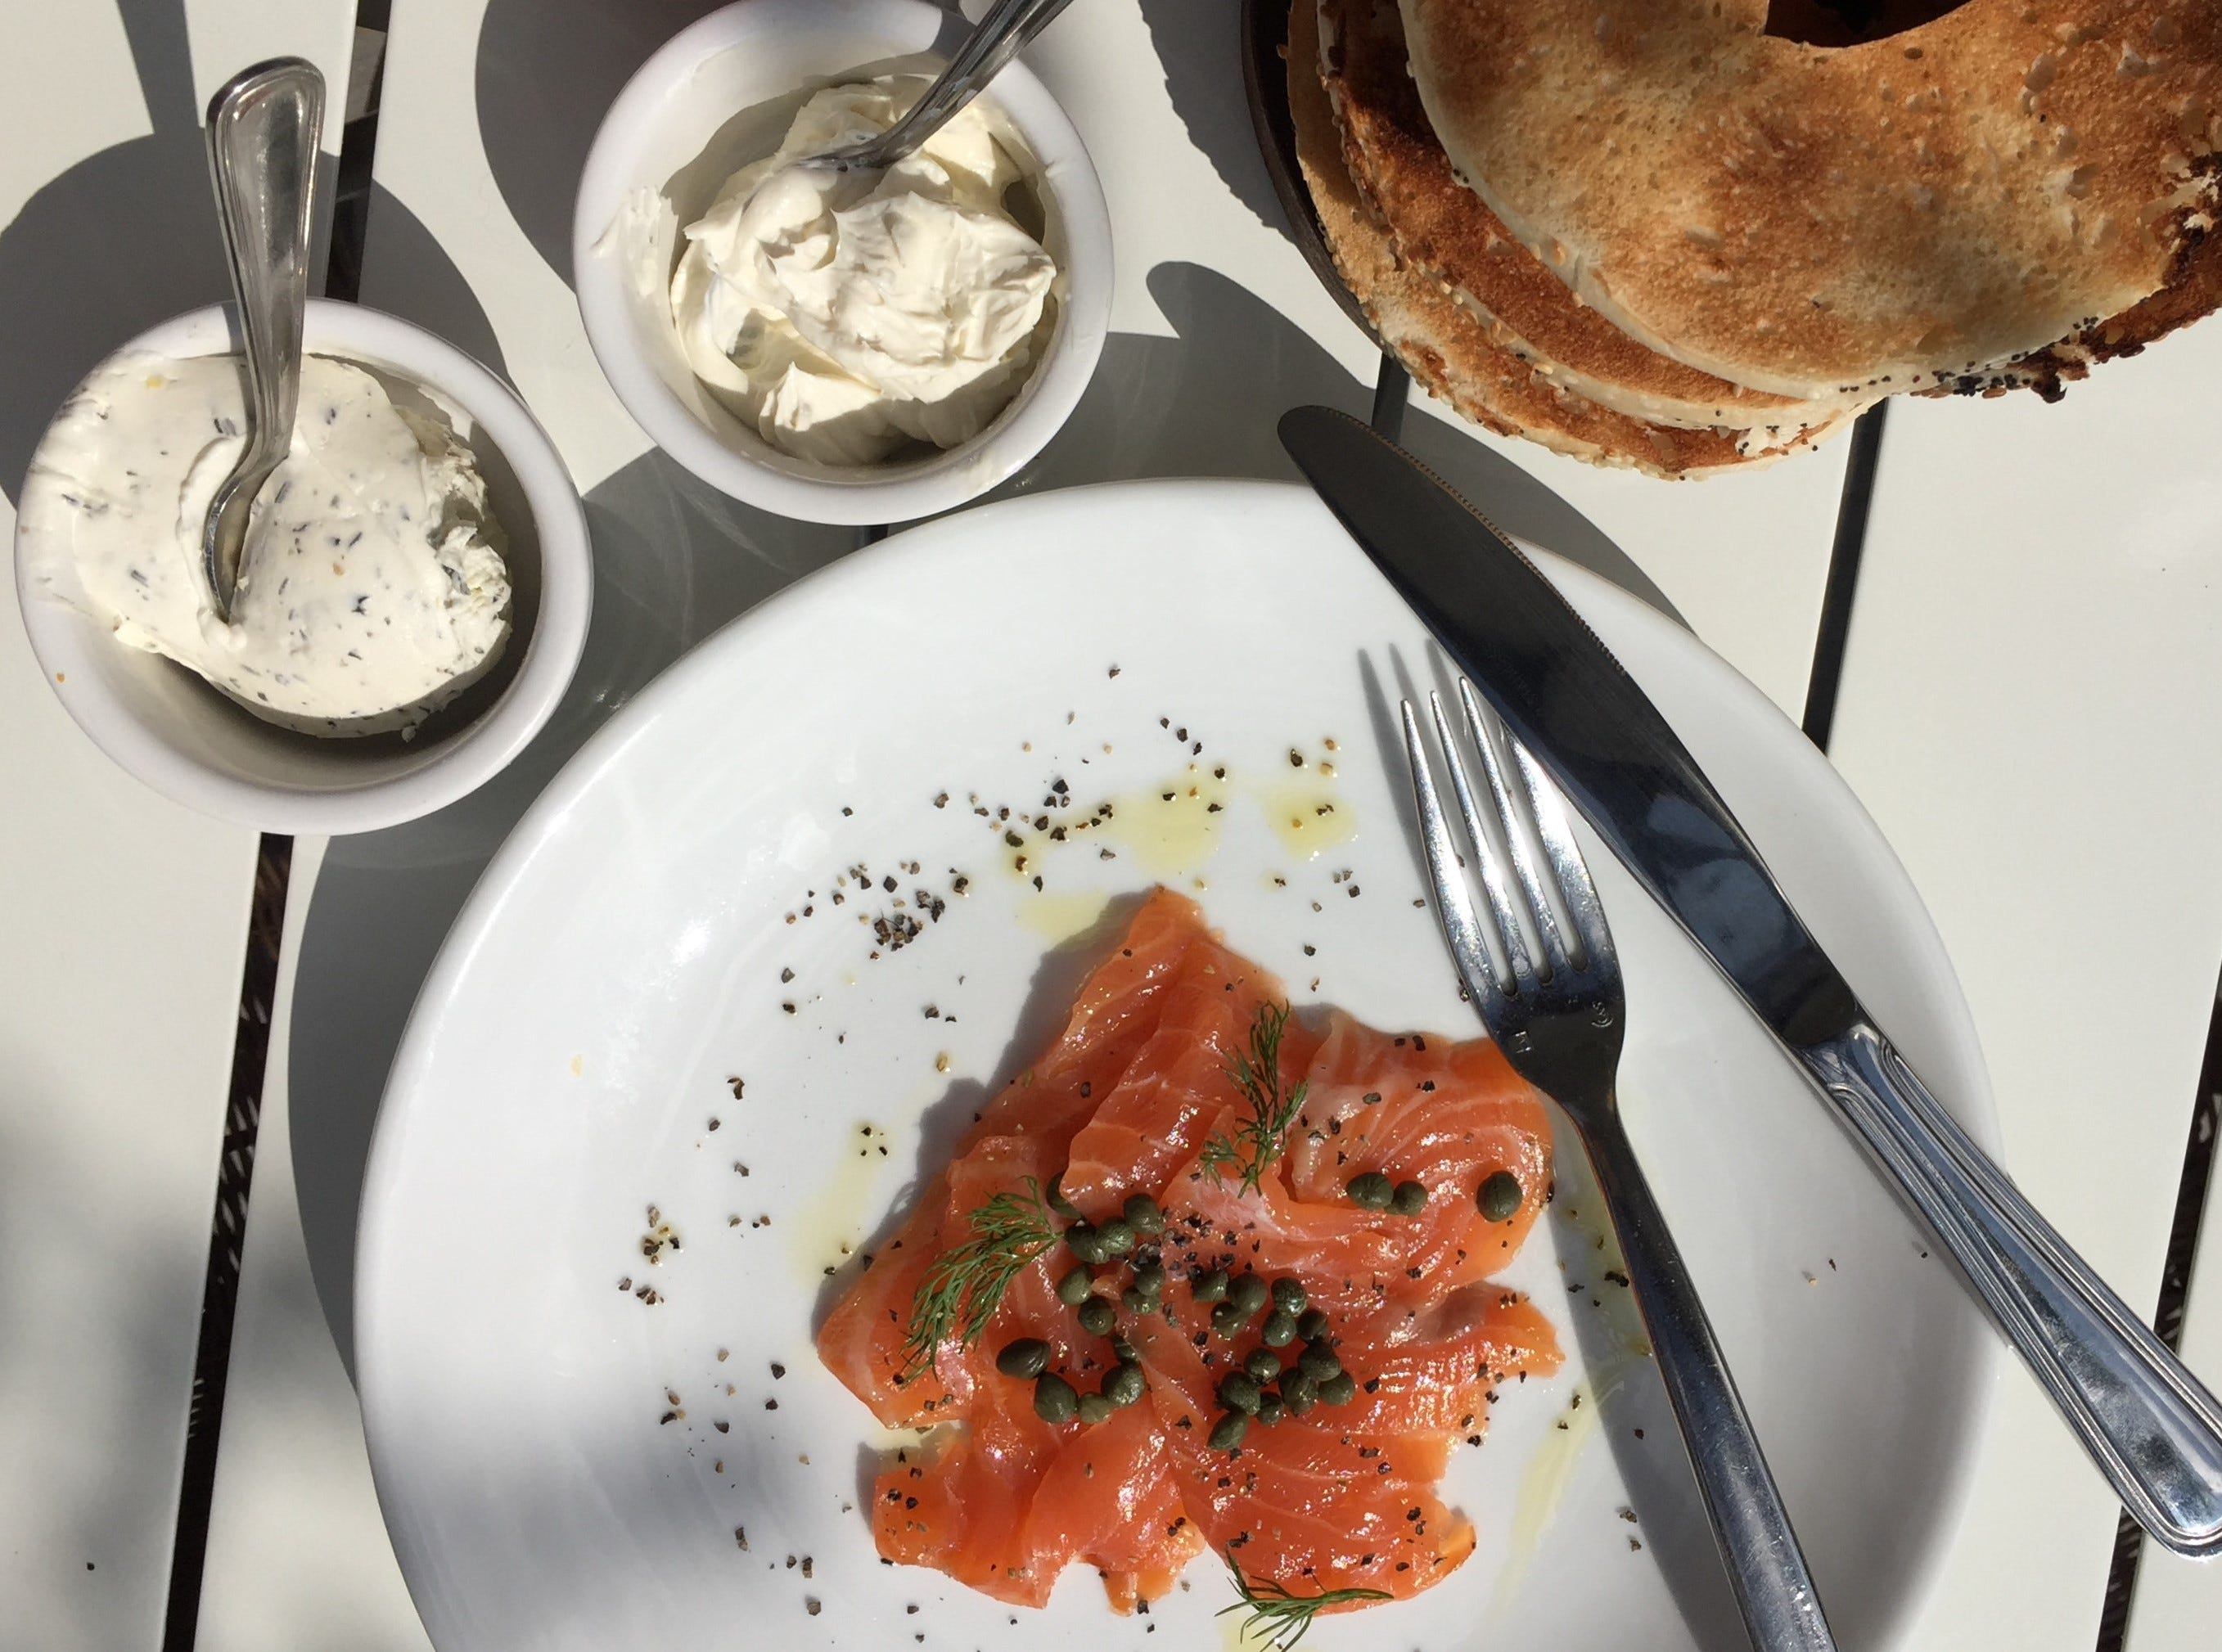 Lox cured by Indianapolis' own Smoking Goose Meatery comes with herbed and plain cream cheese and a stack of bagels at Just Pop In! popcorn bar and cafe at 6406 Cornell Ave. in the Broad Ripple  community of Indianapolis.